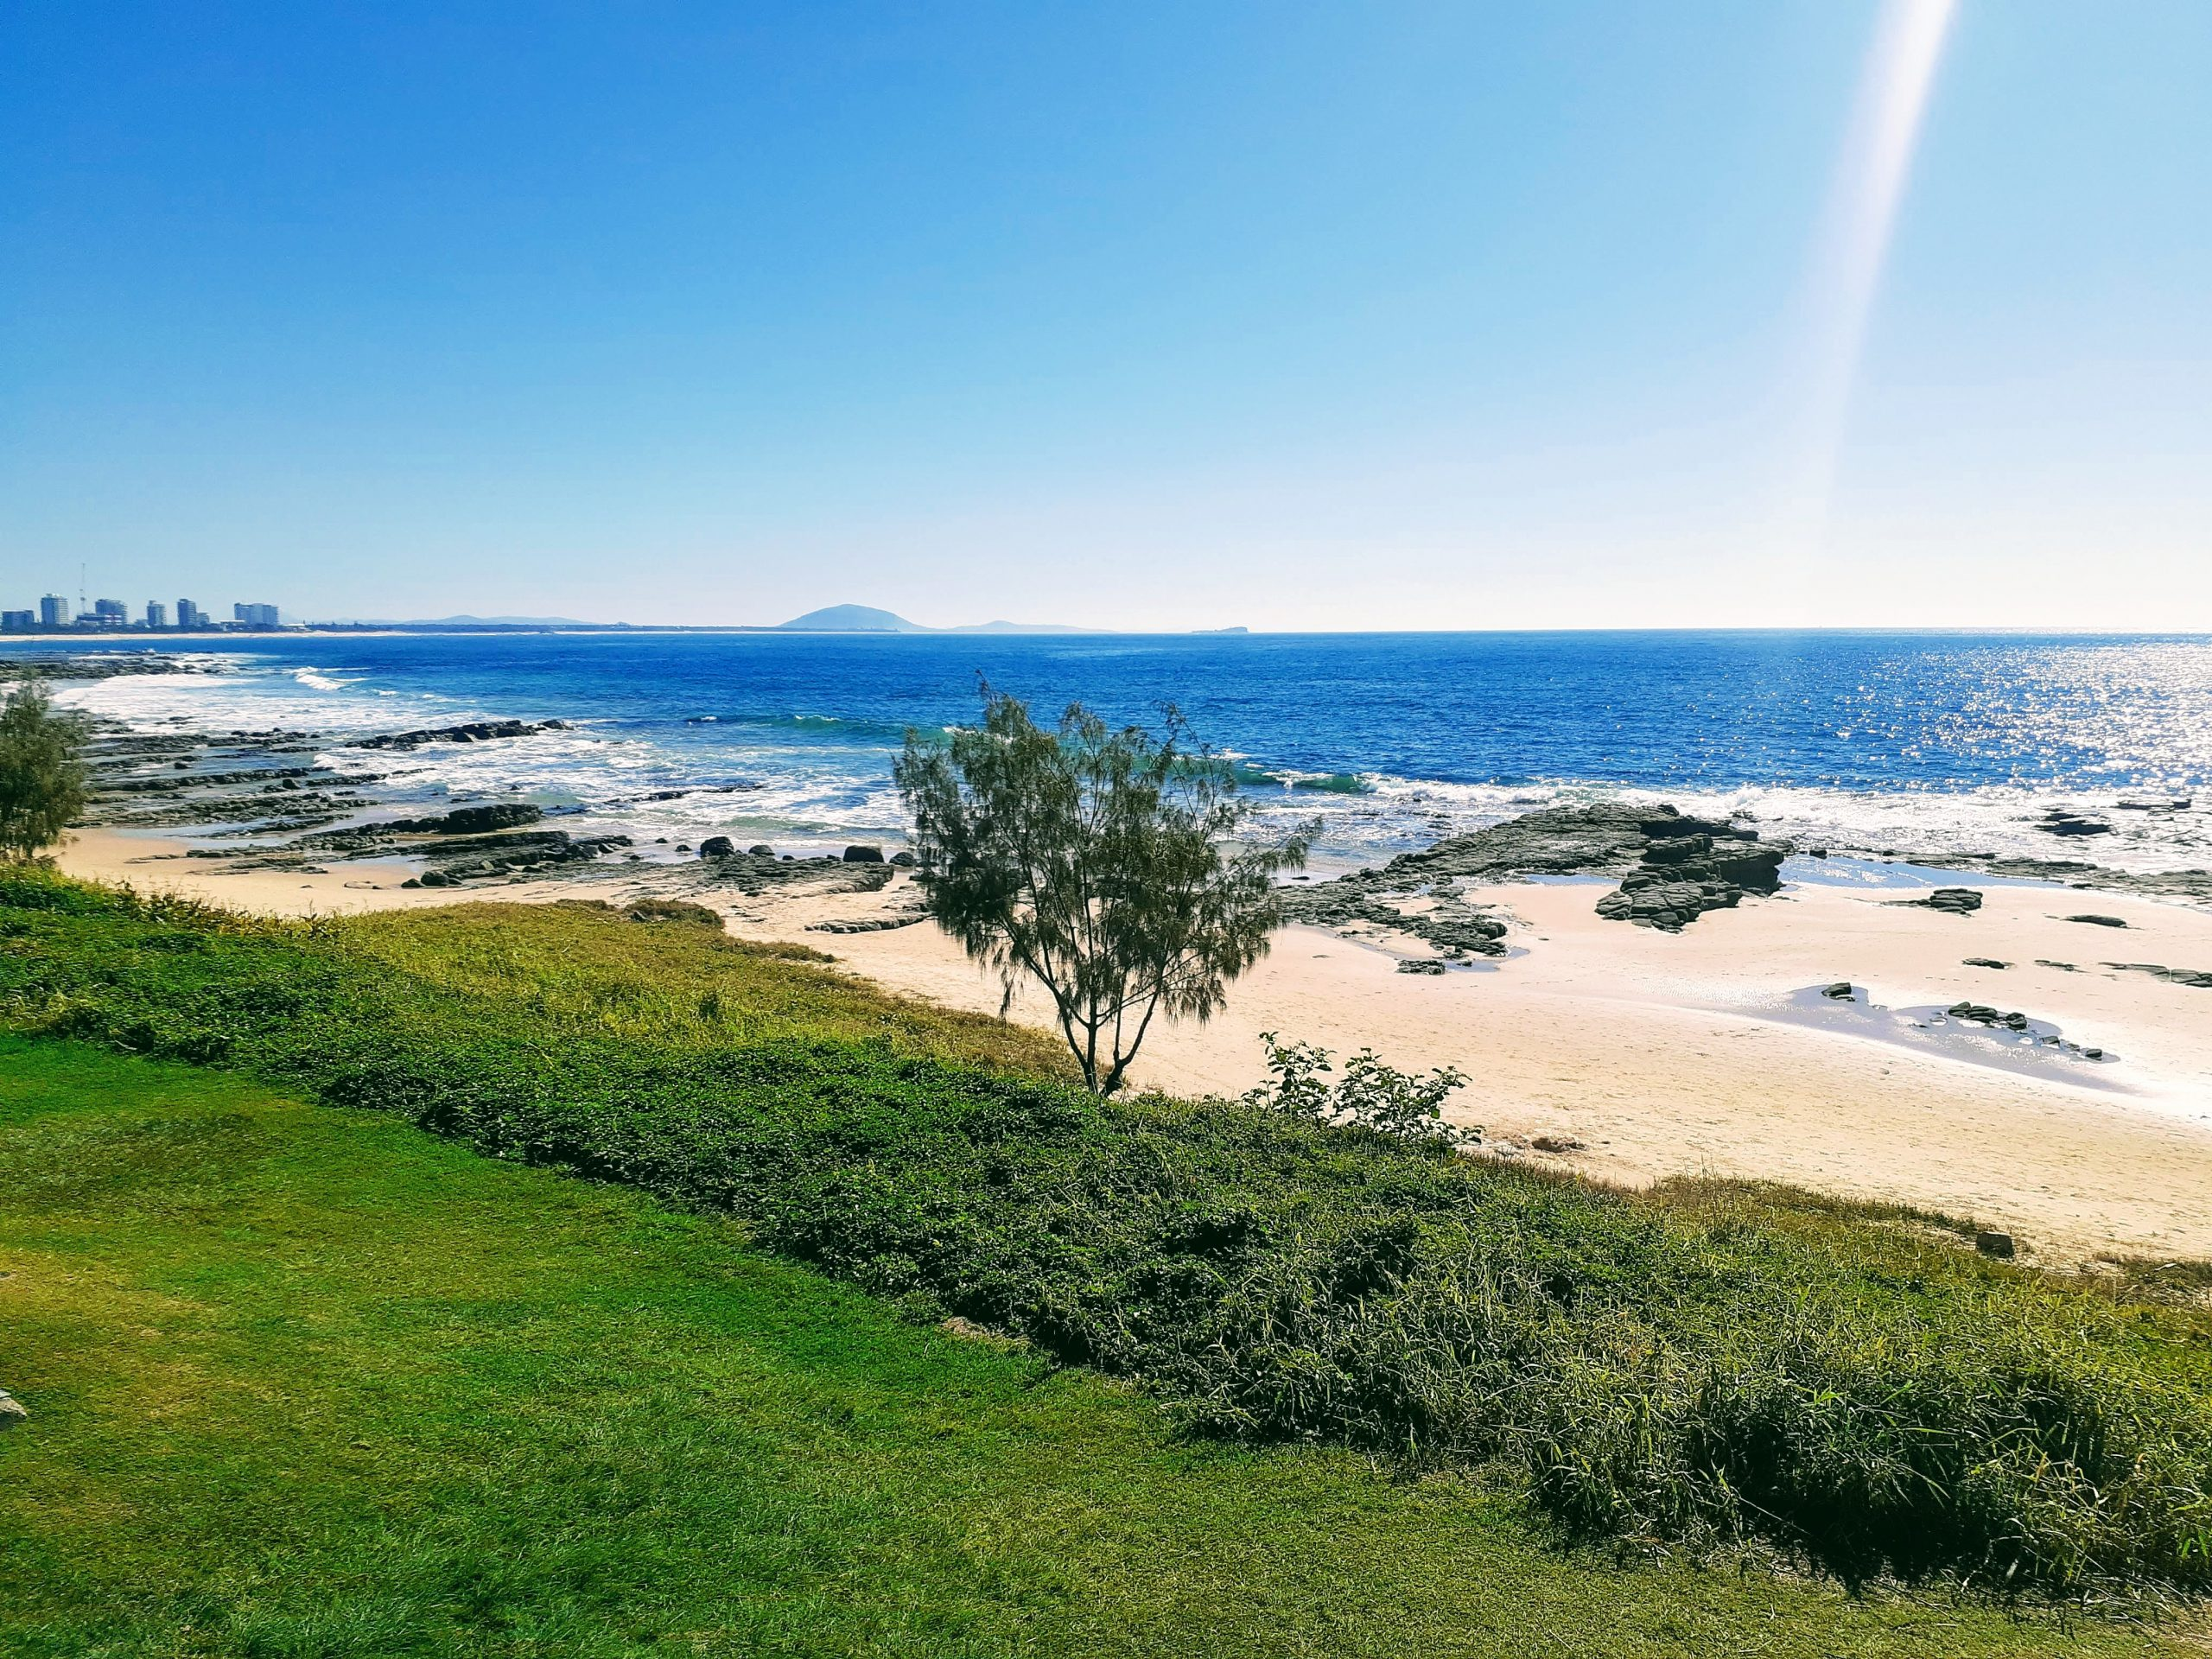 Check out this awesome Mooloolaba Beach View!